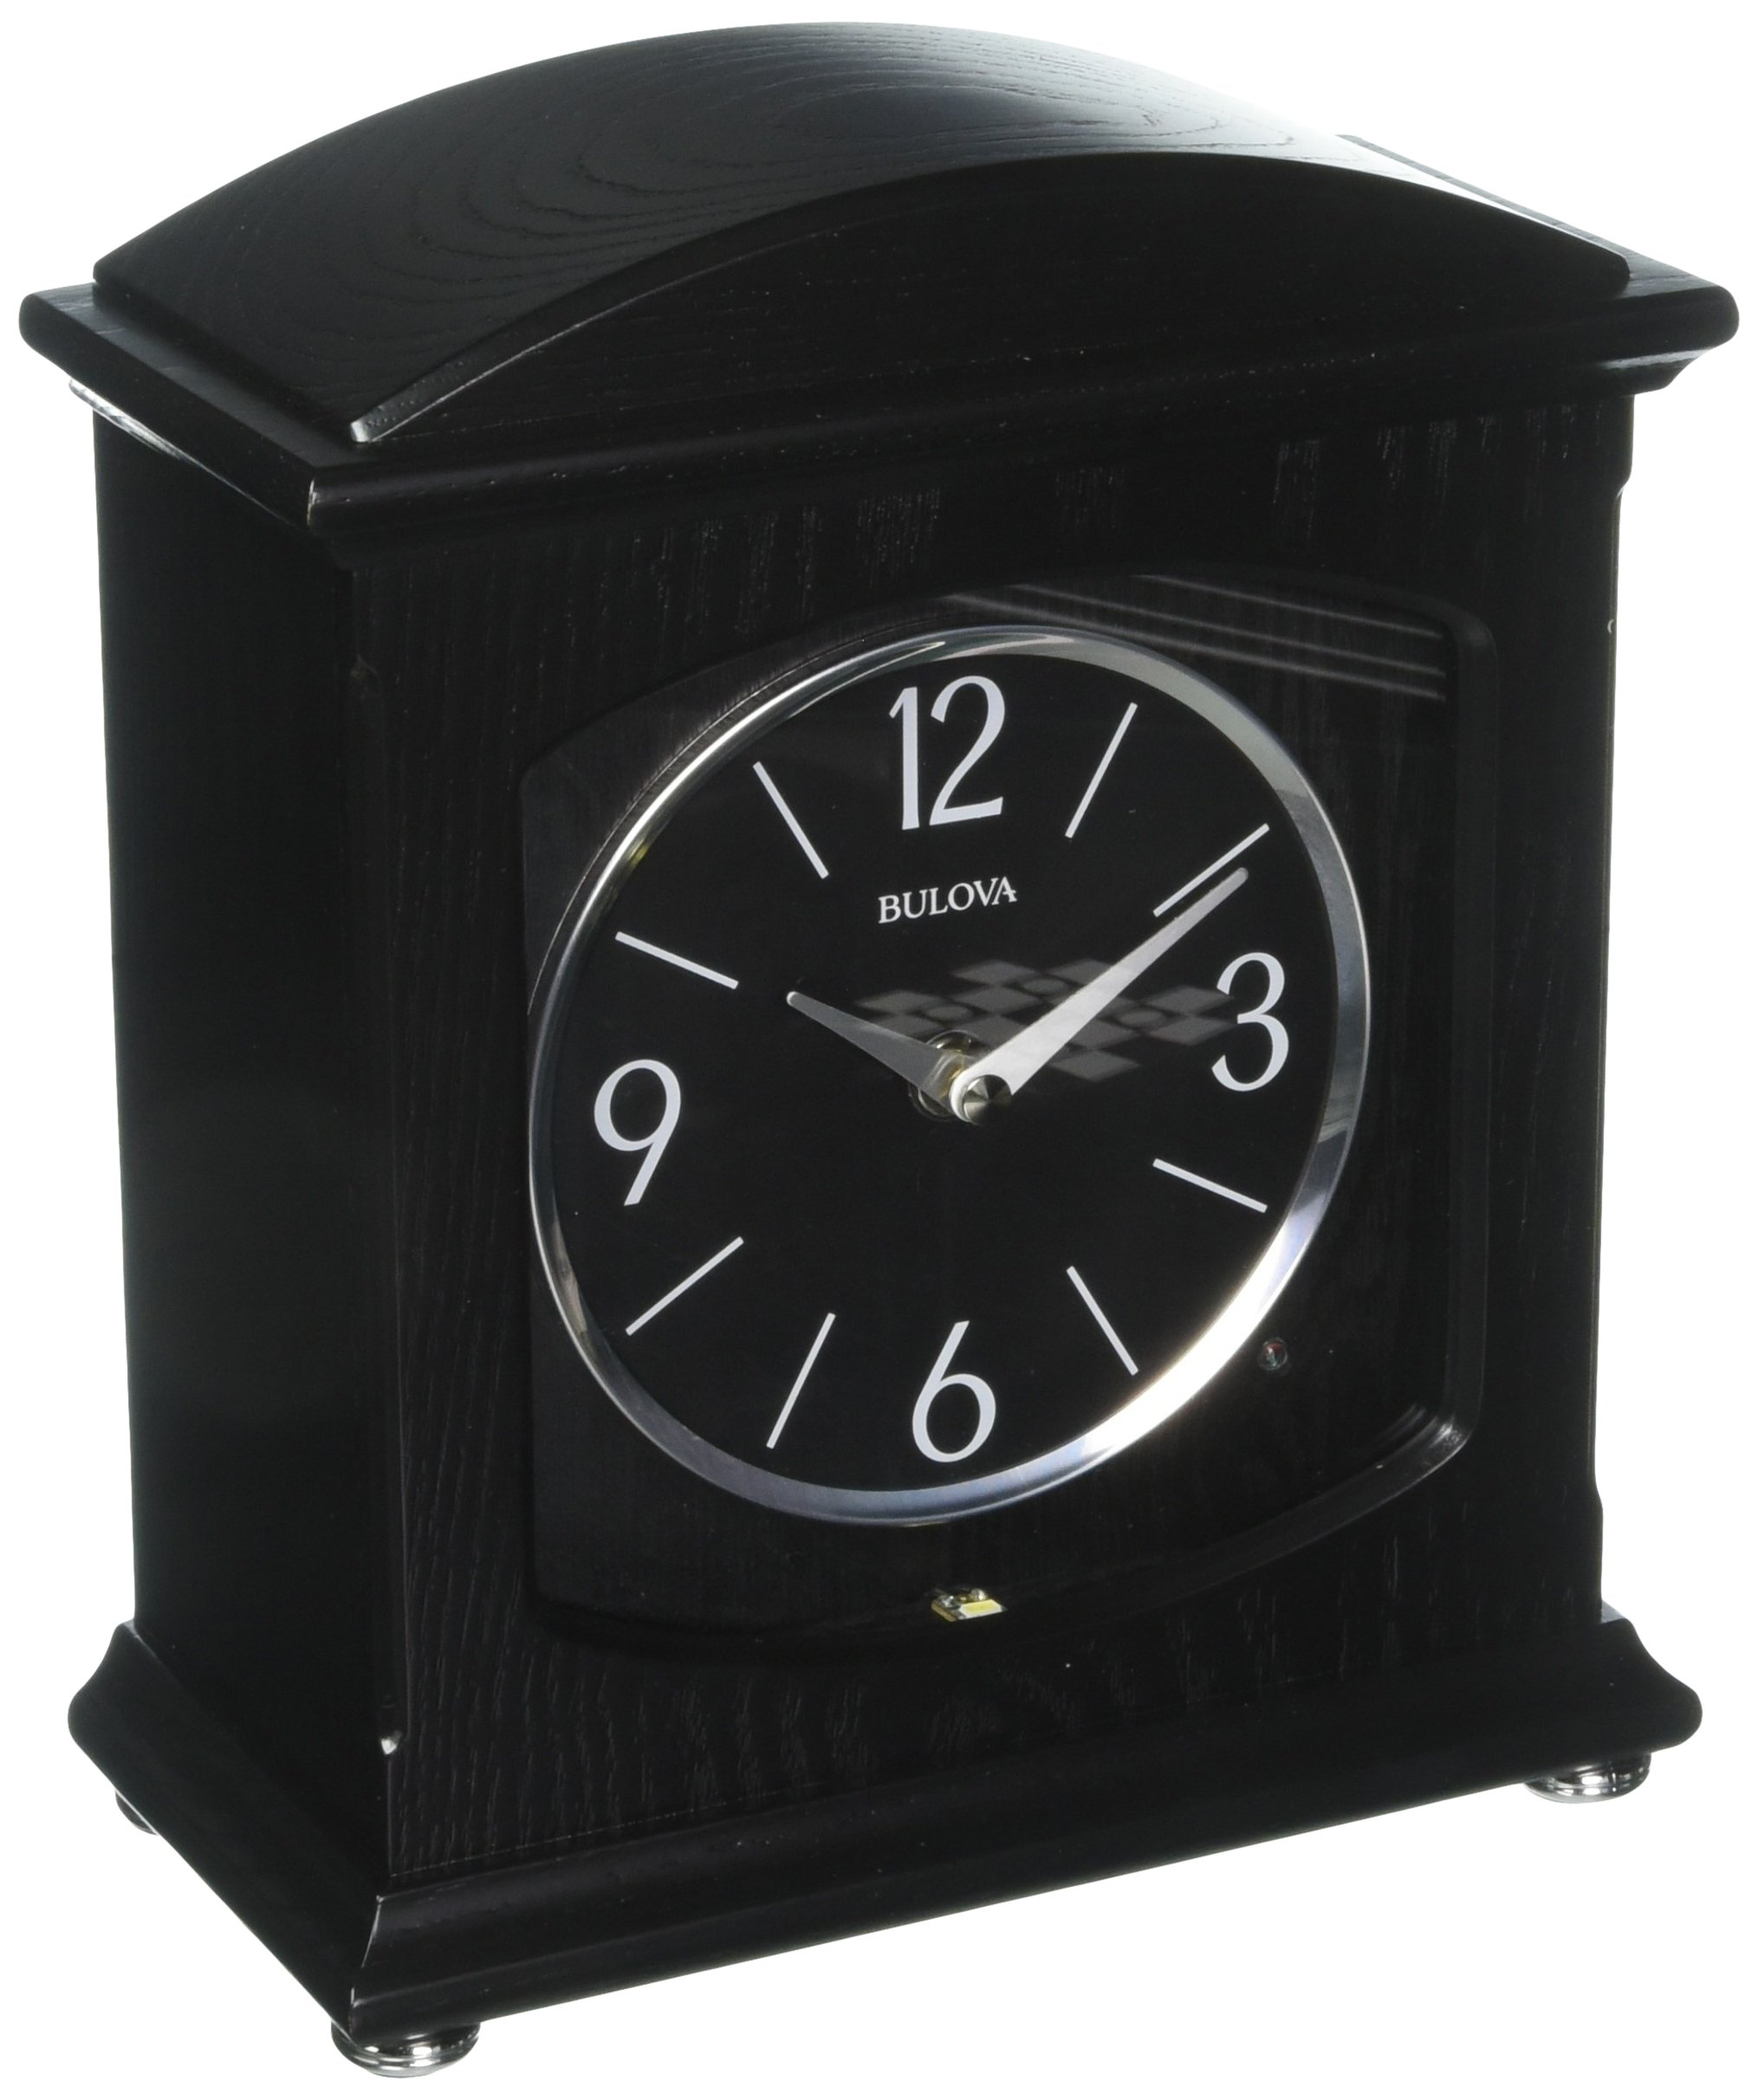 Bulova Glendale Mantel Clock, Black by Bulova